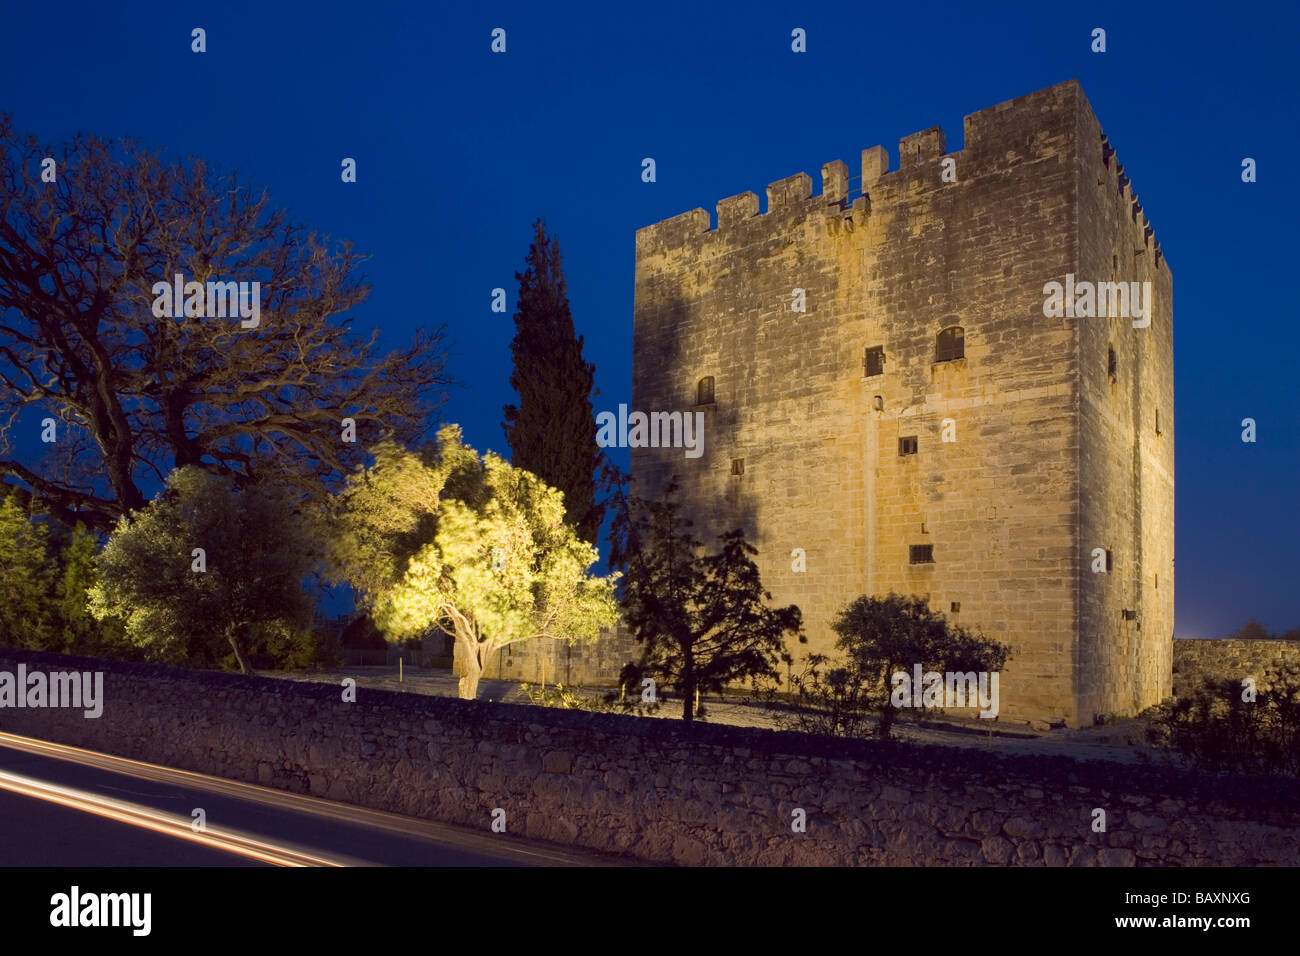 Castle built by the Order of St. John, 15th century, Kolossi, Limassol district, South Cyprus, Cyprus - Stock Image